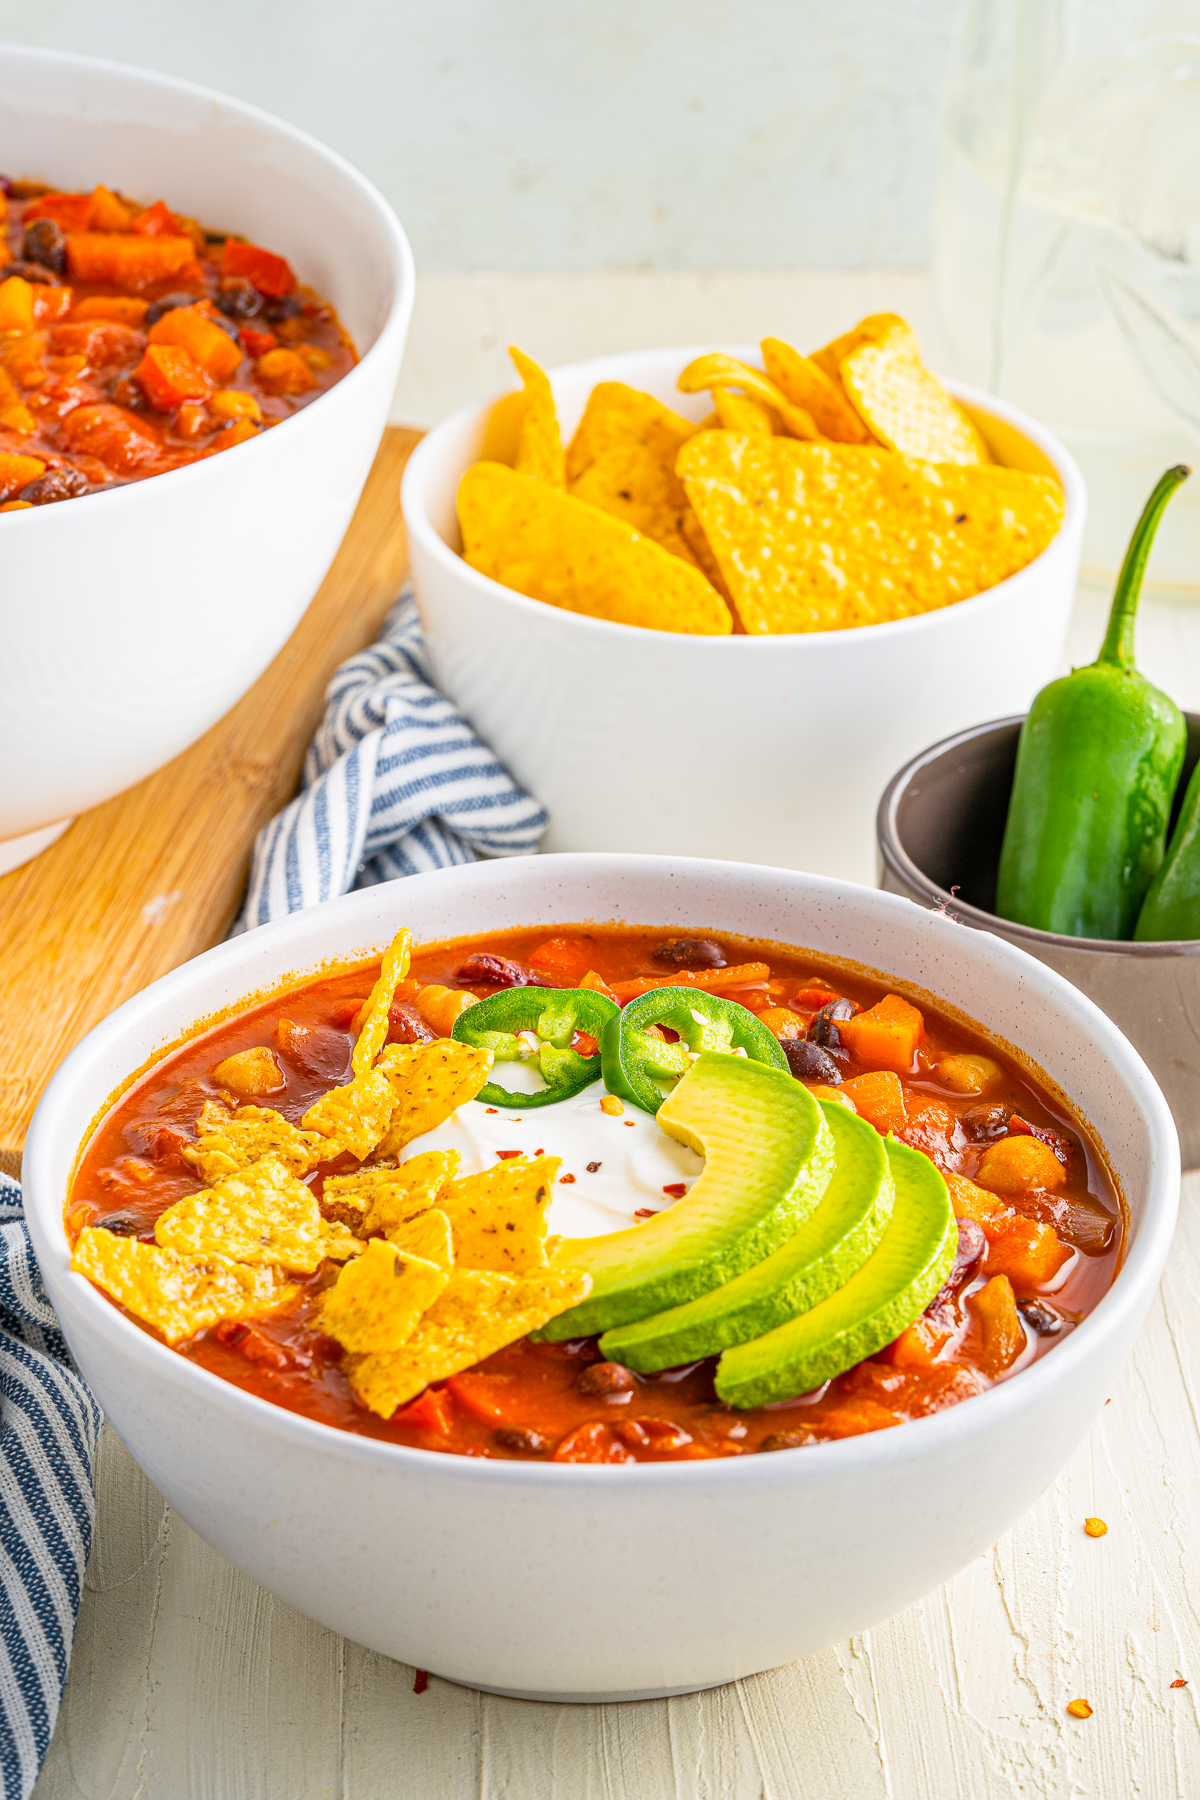 Close up of garnished bowl of the Vegetarian Chili Recipe.